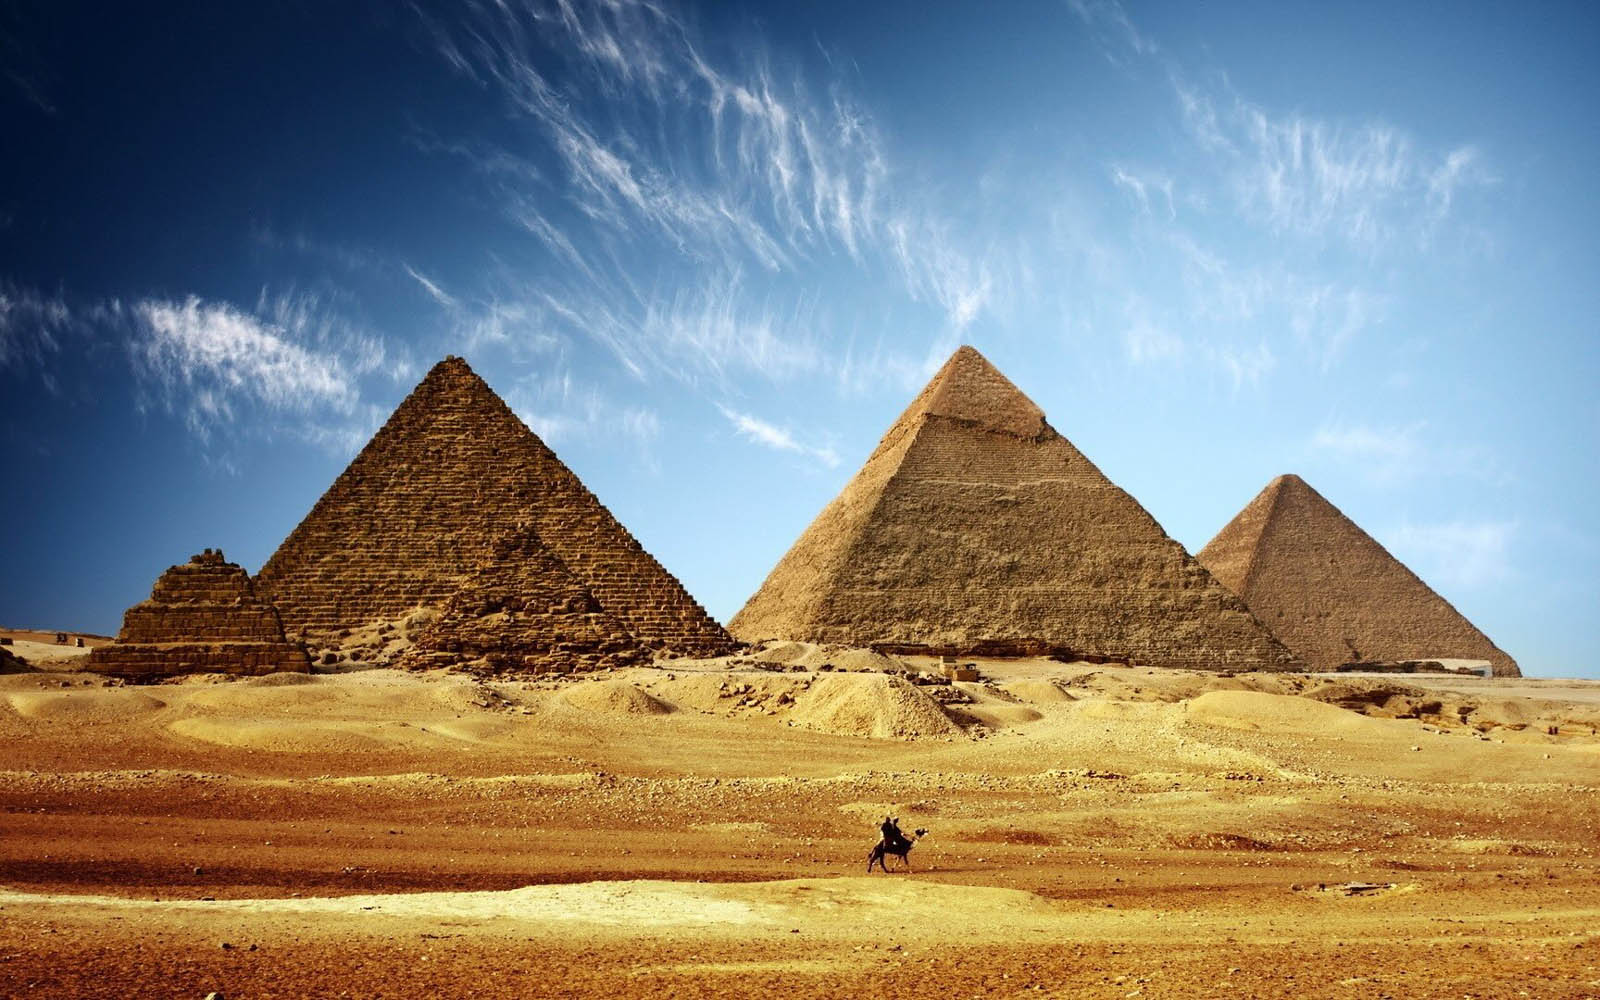 pyramids from ancient egypt